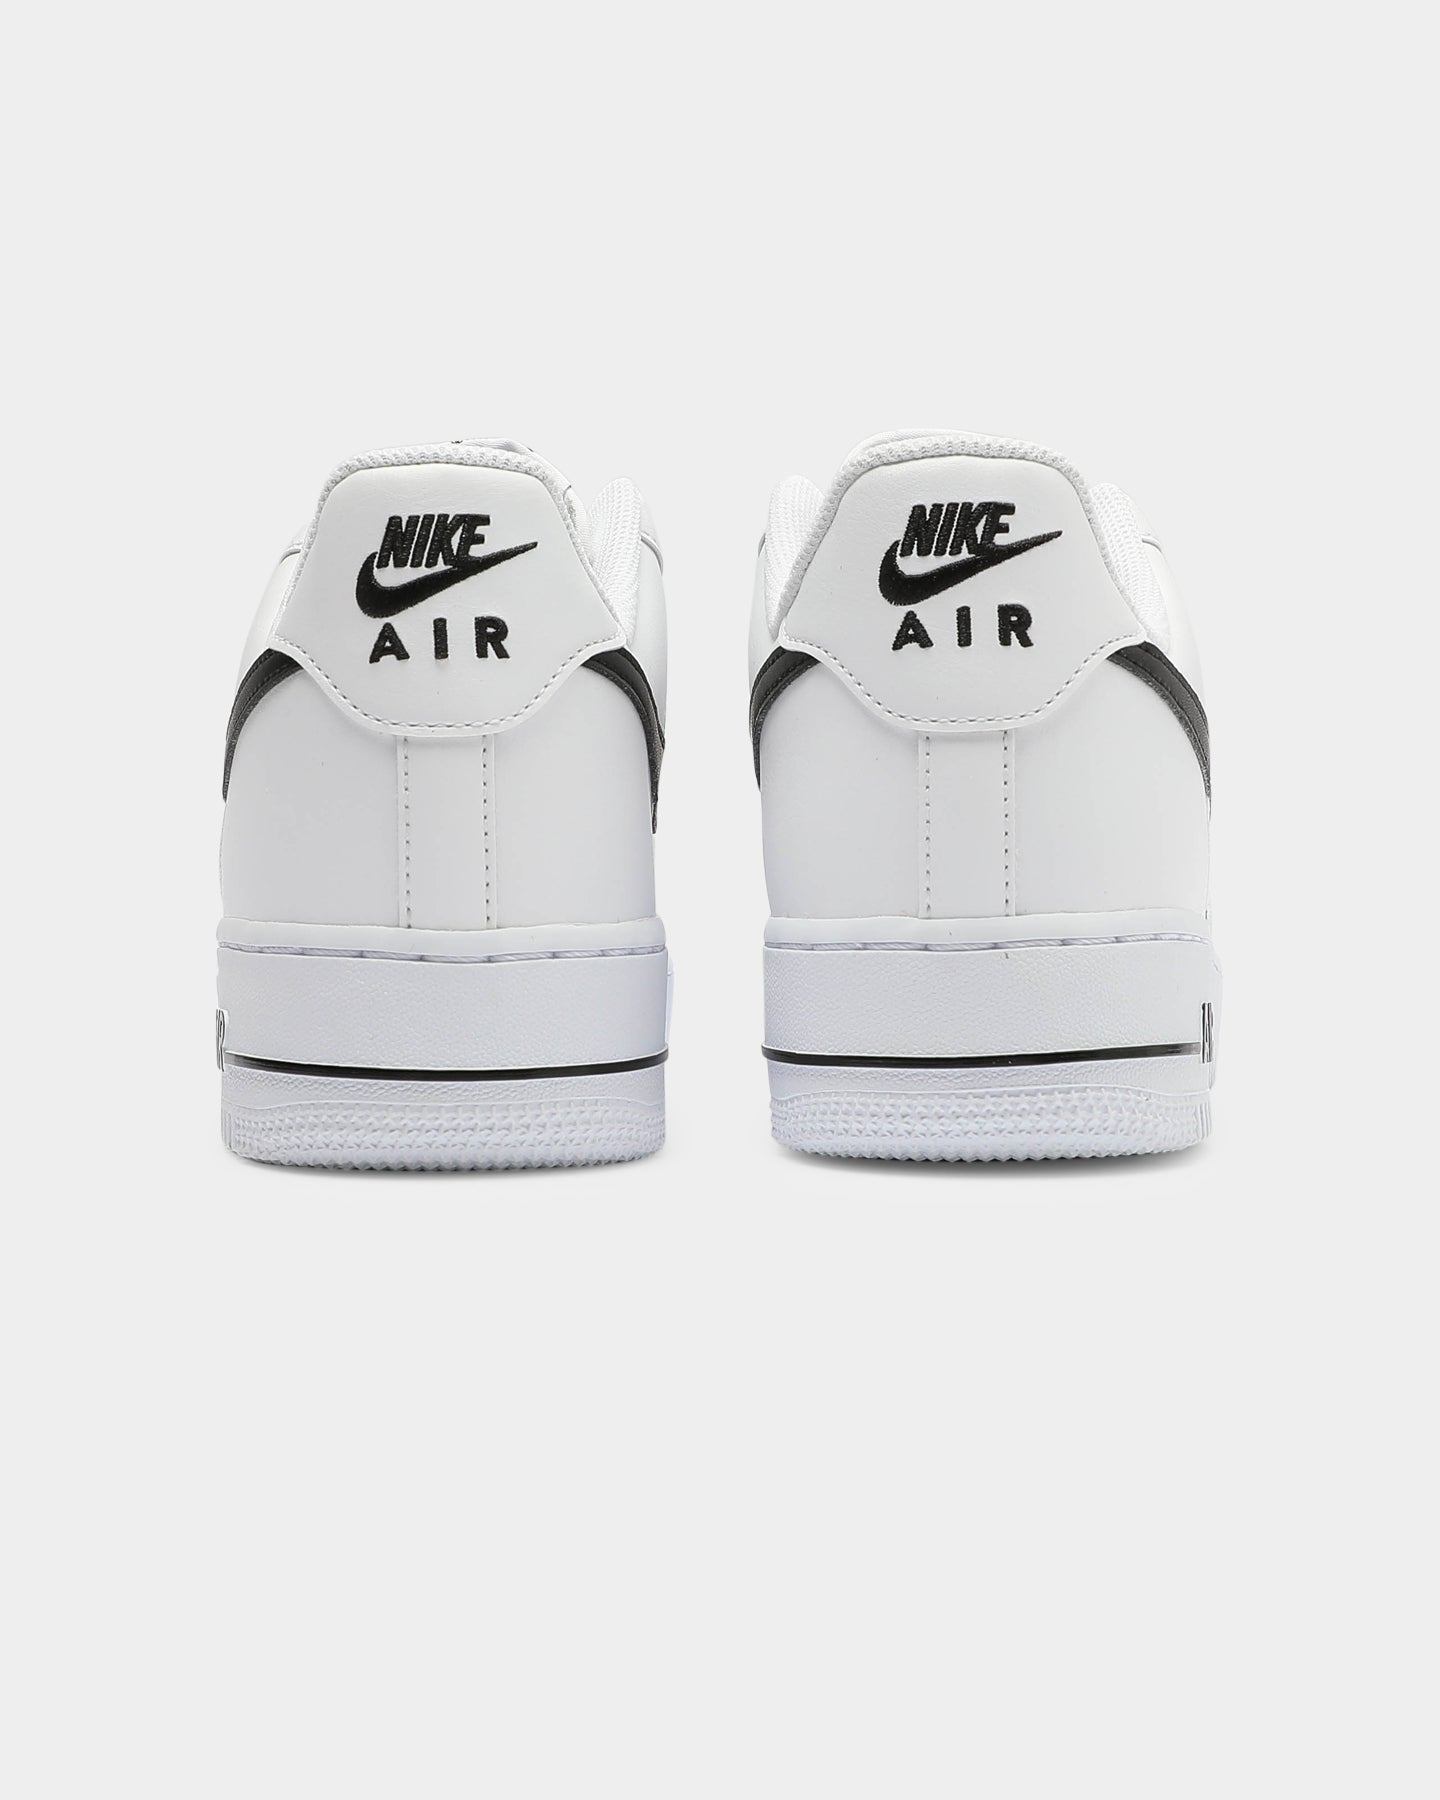 Embrace The Heat With The Nike Air Force 1 '07 'WhiteBlack